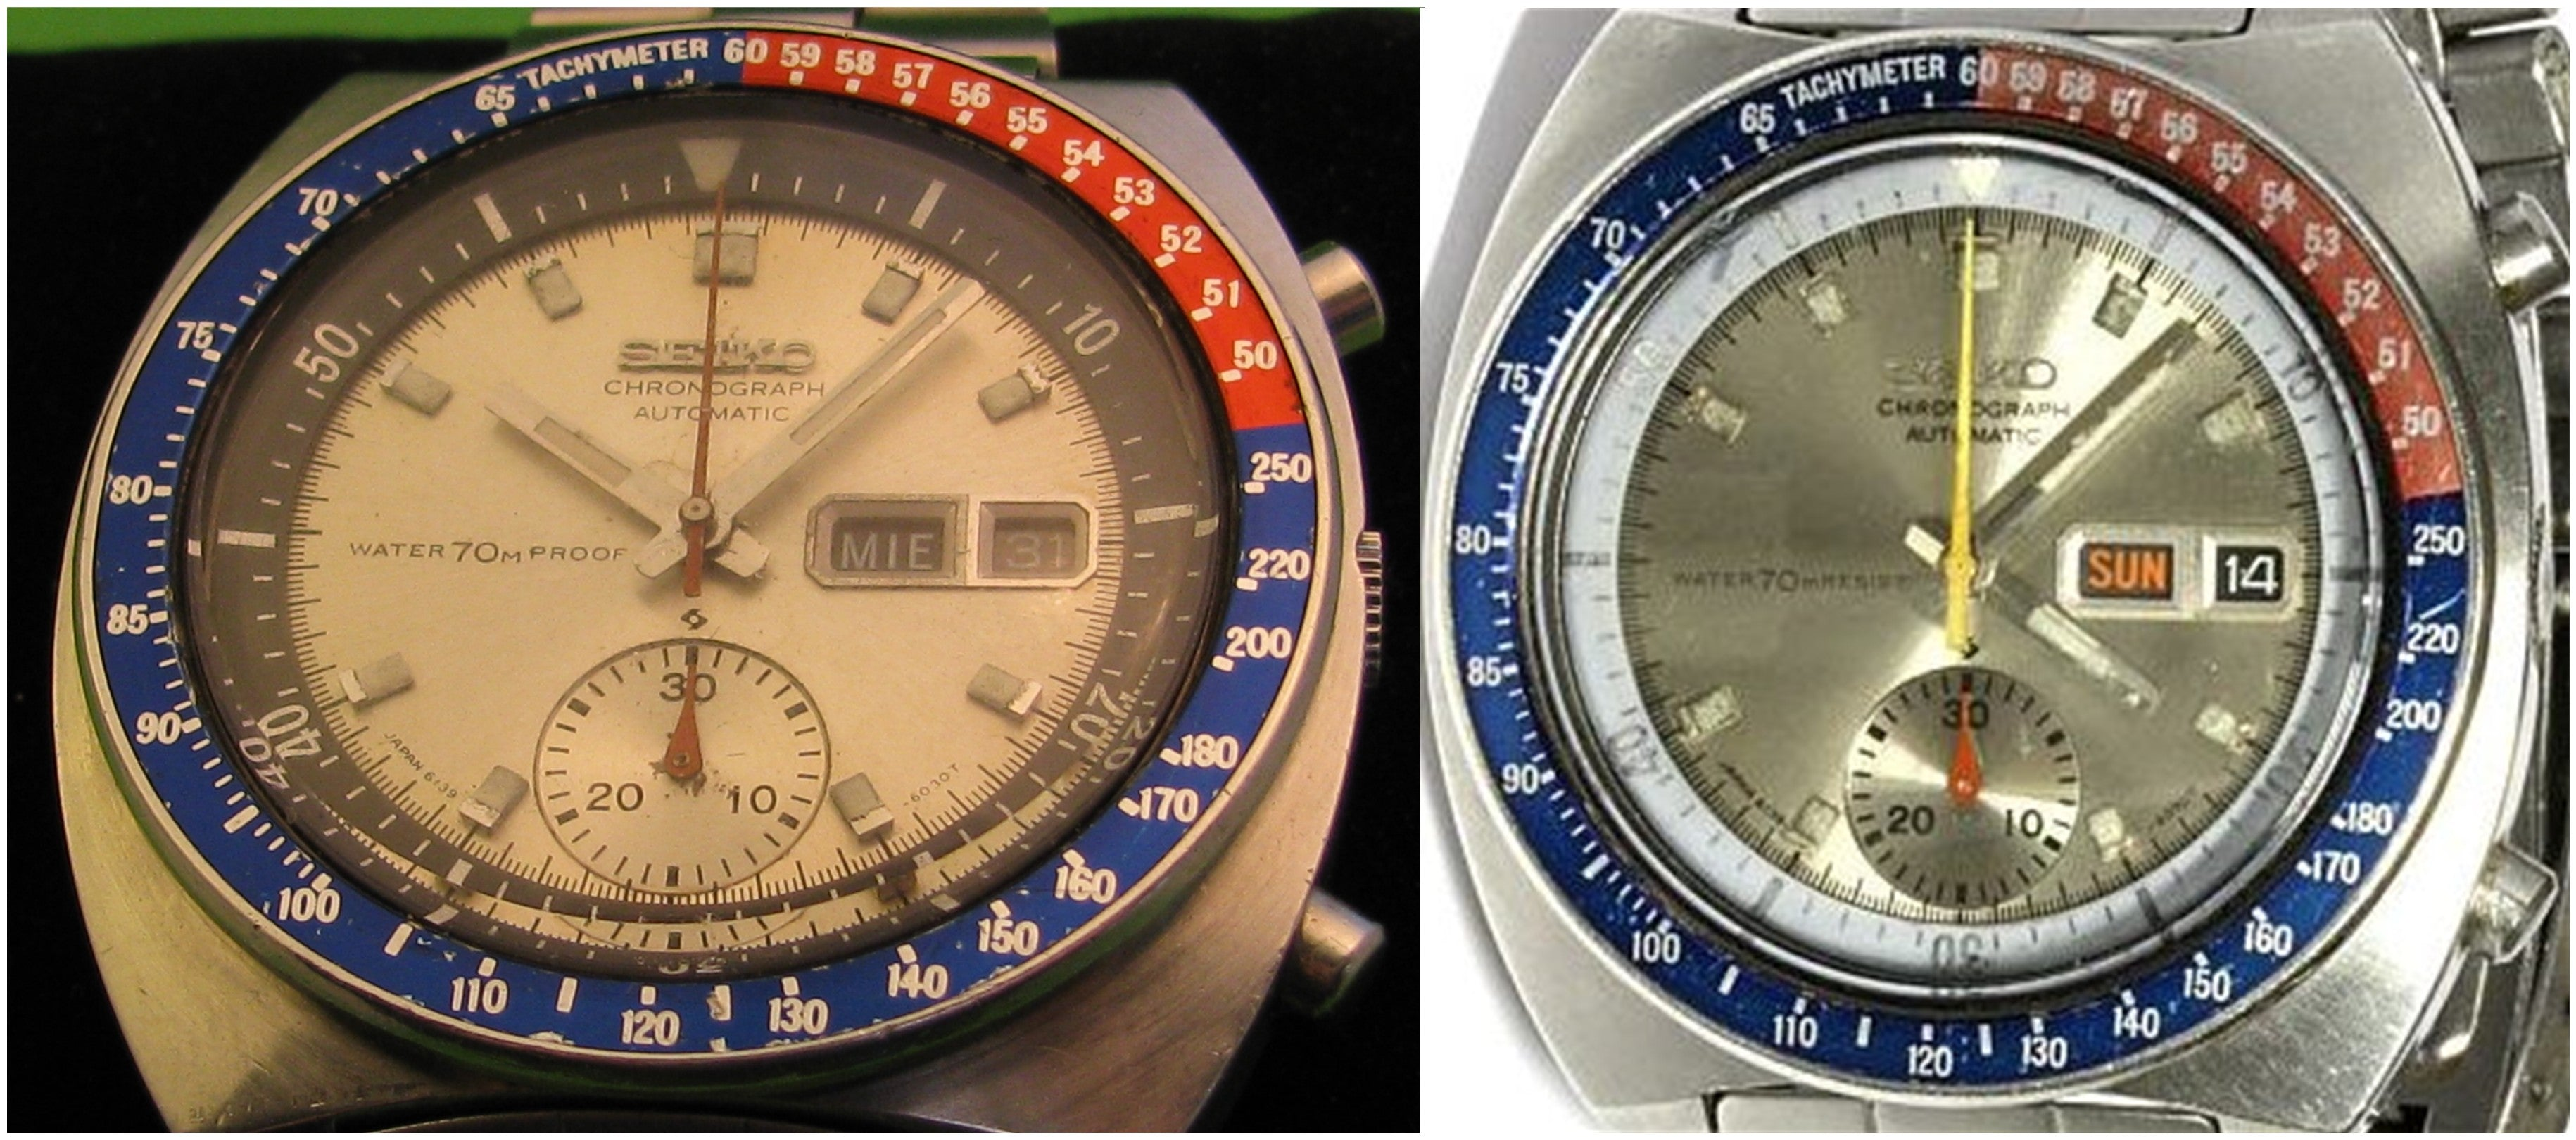 Seiko Pogue dial variations: Proof and Resist dials